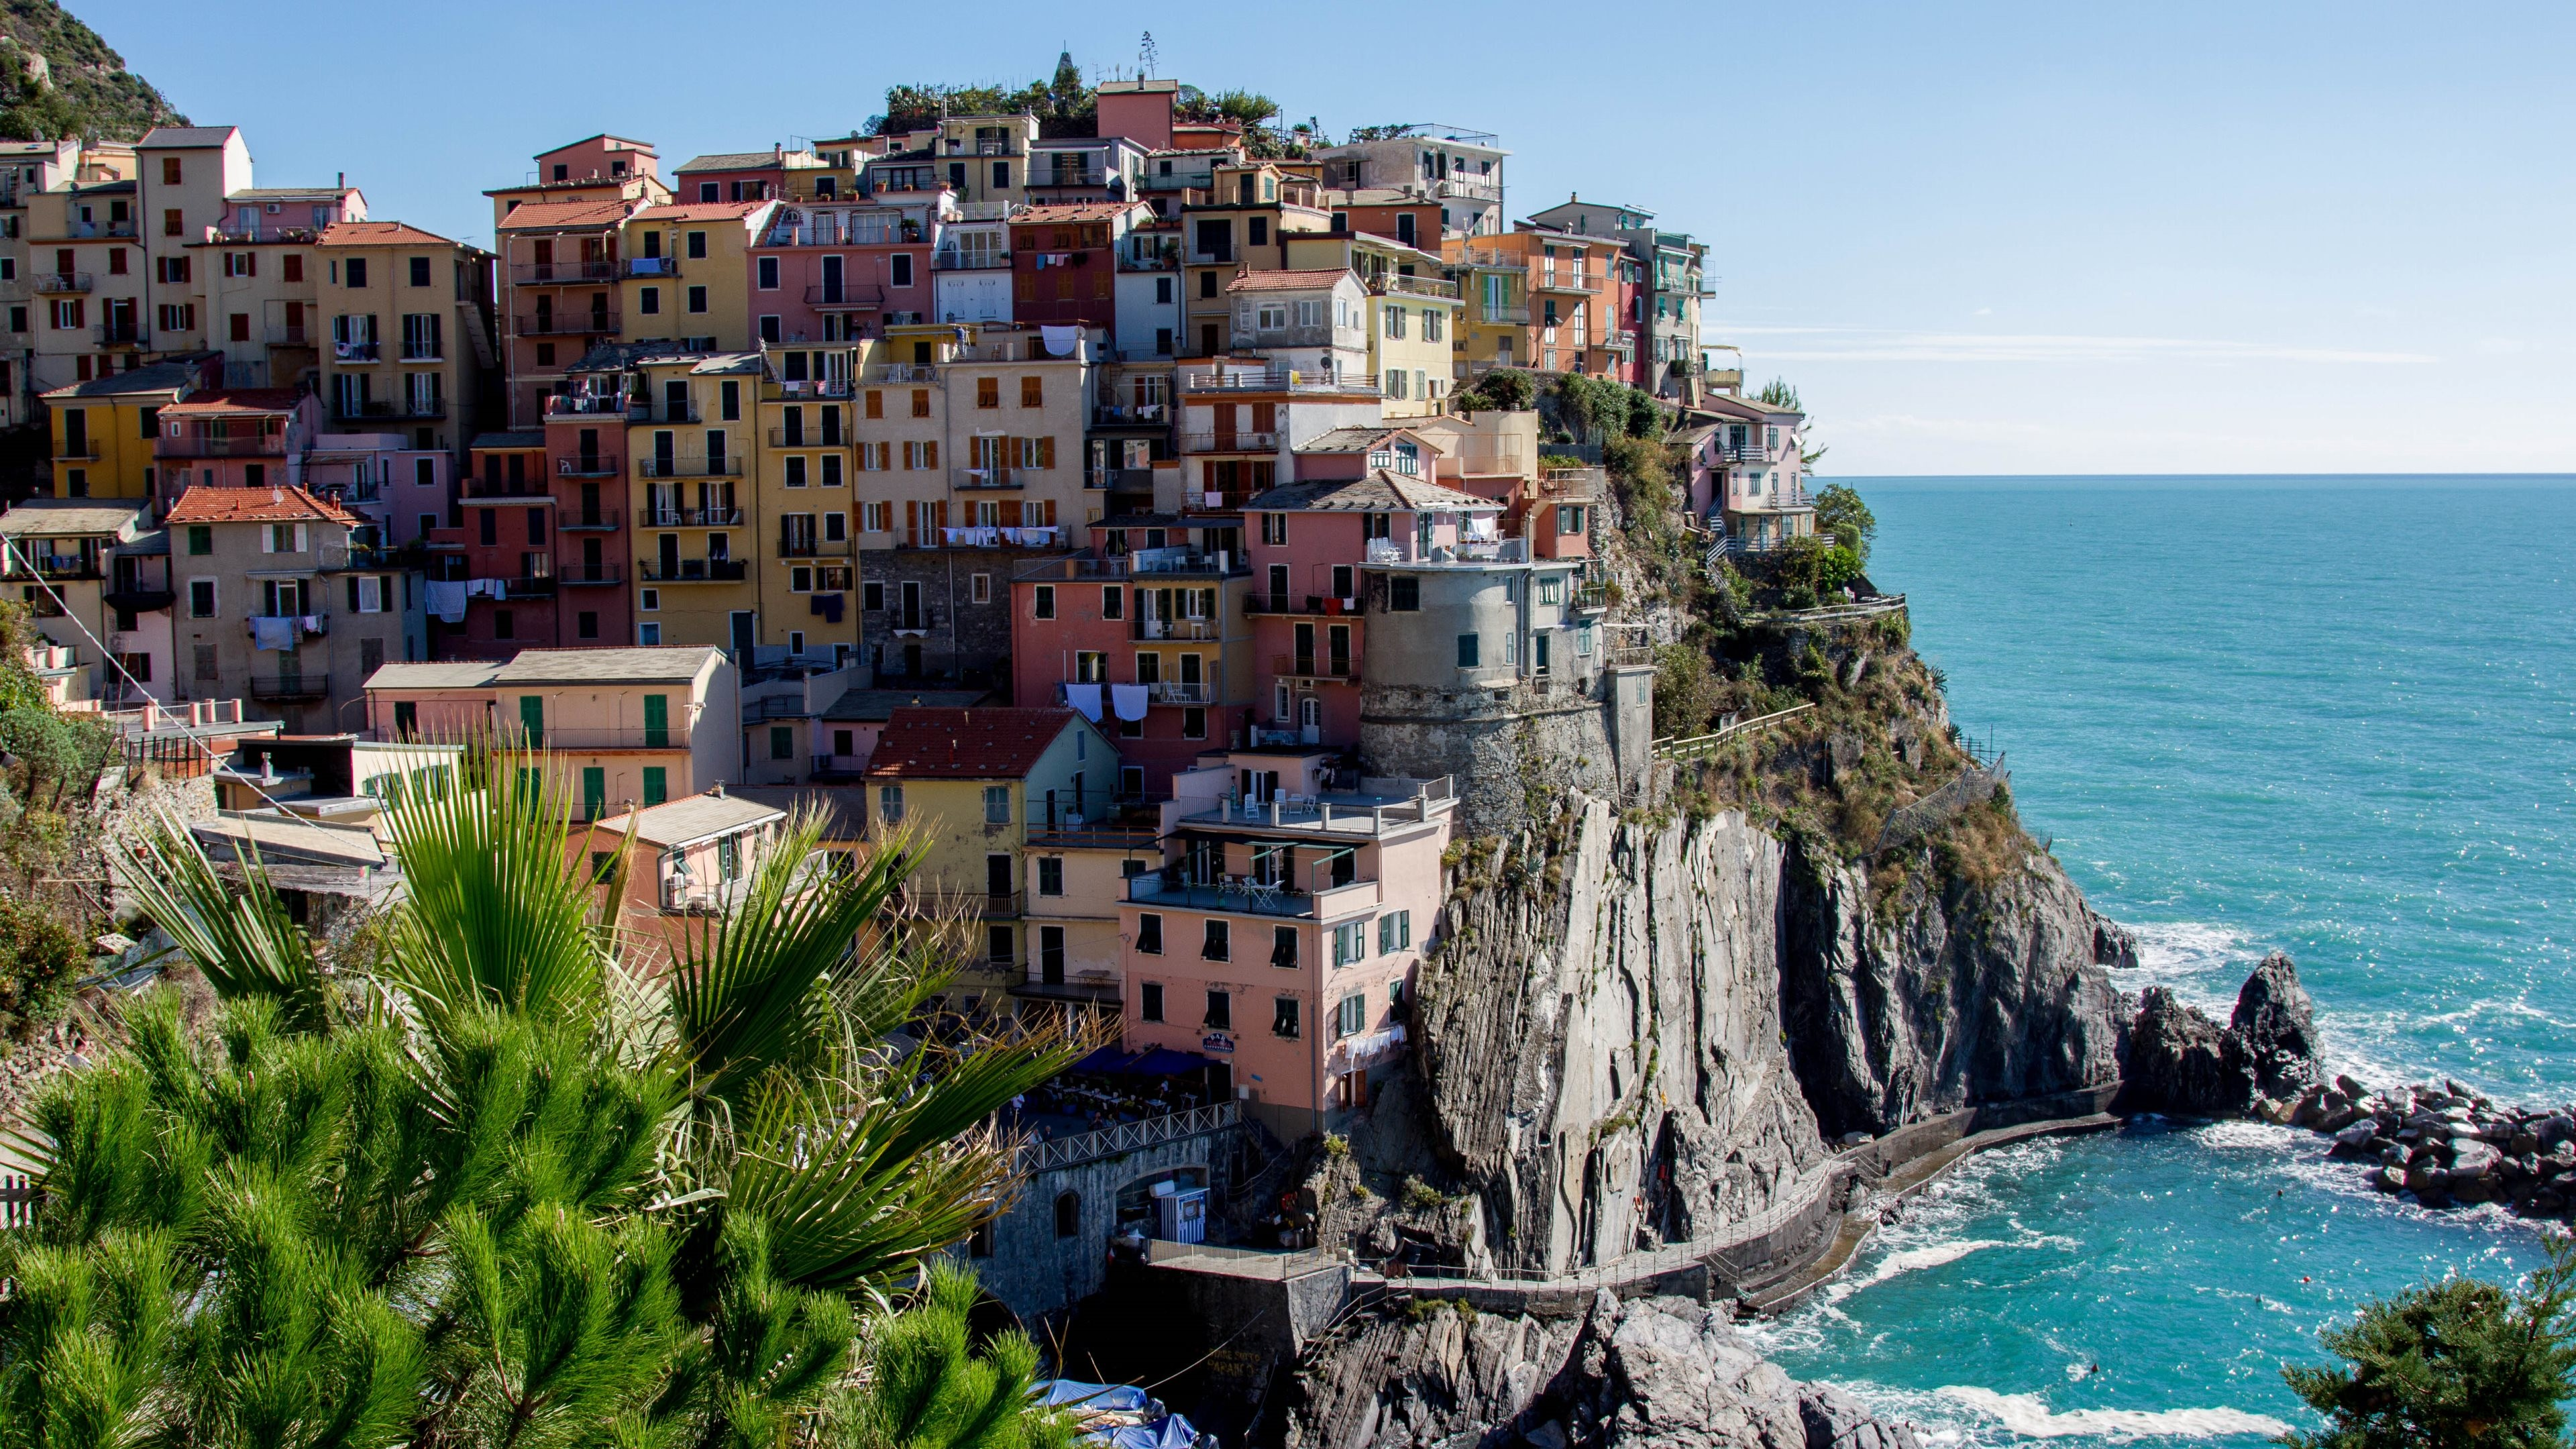 3840x2160 Manarola 4K Gallery | HD Wallpapers · 4K